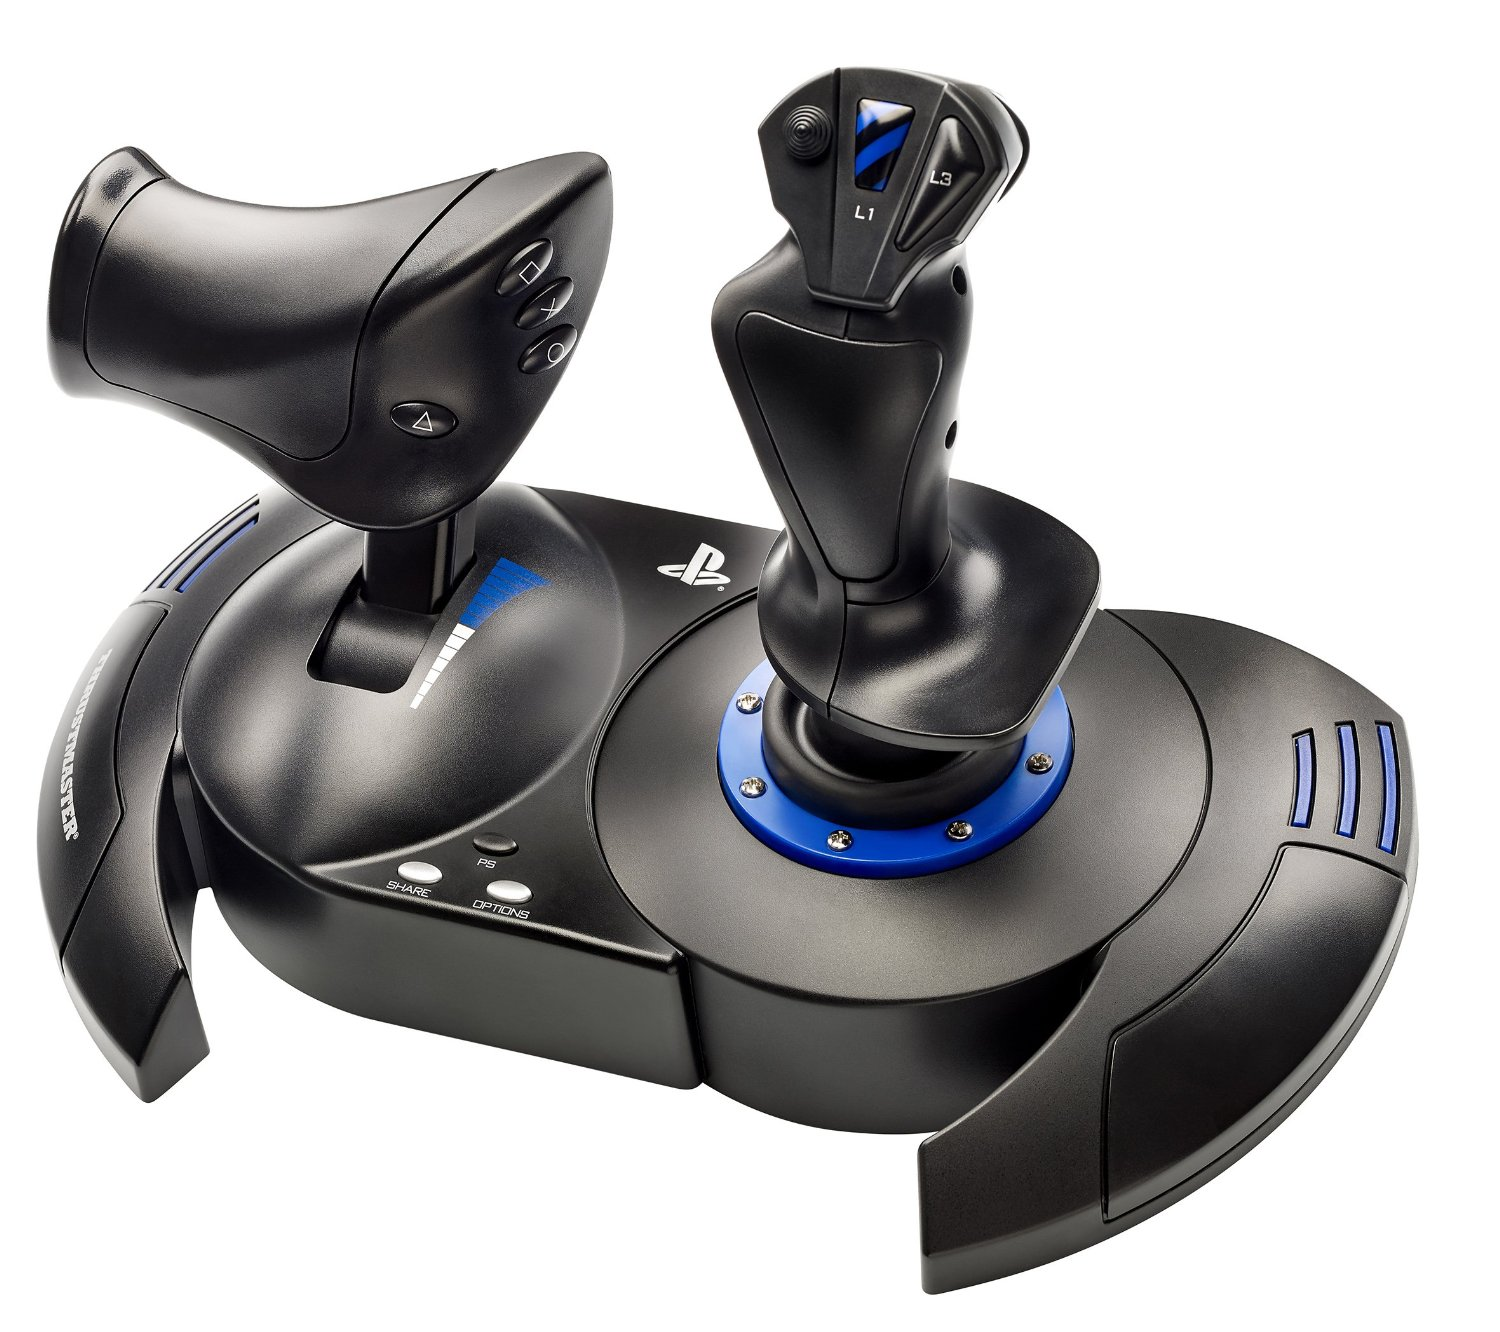 Thrustmaster-T.Flight-Hotas-4-Flight-Stick-5